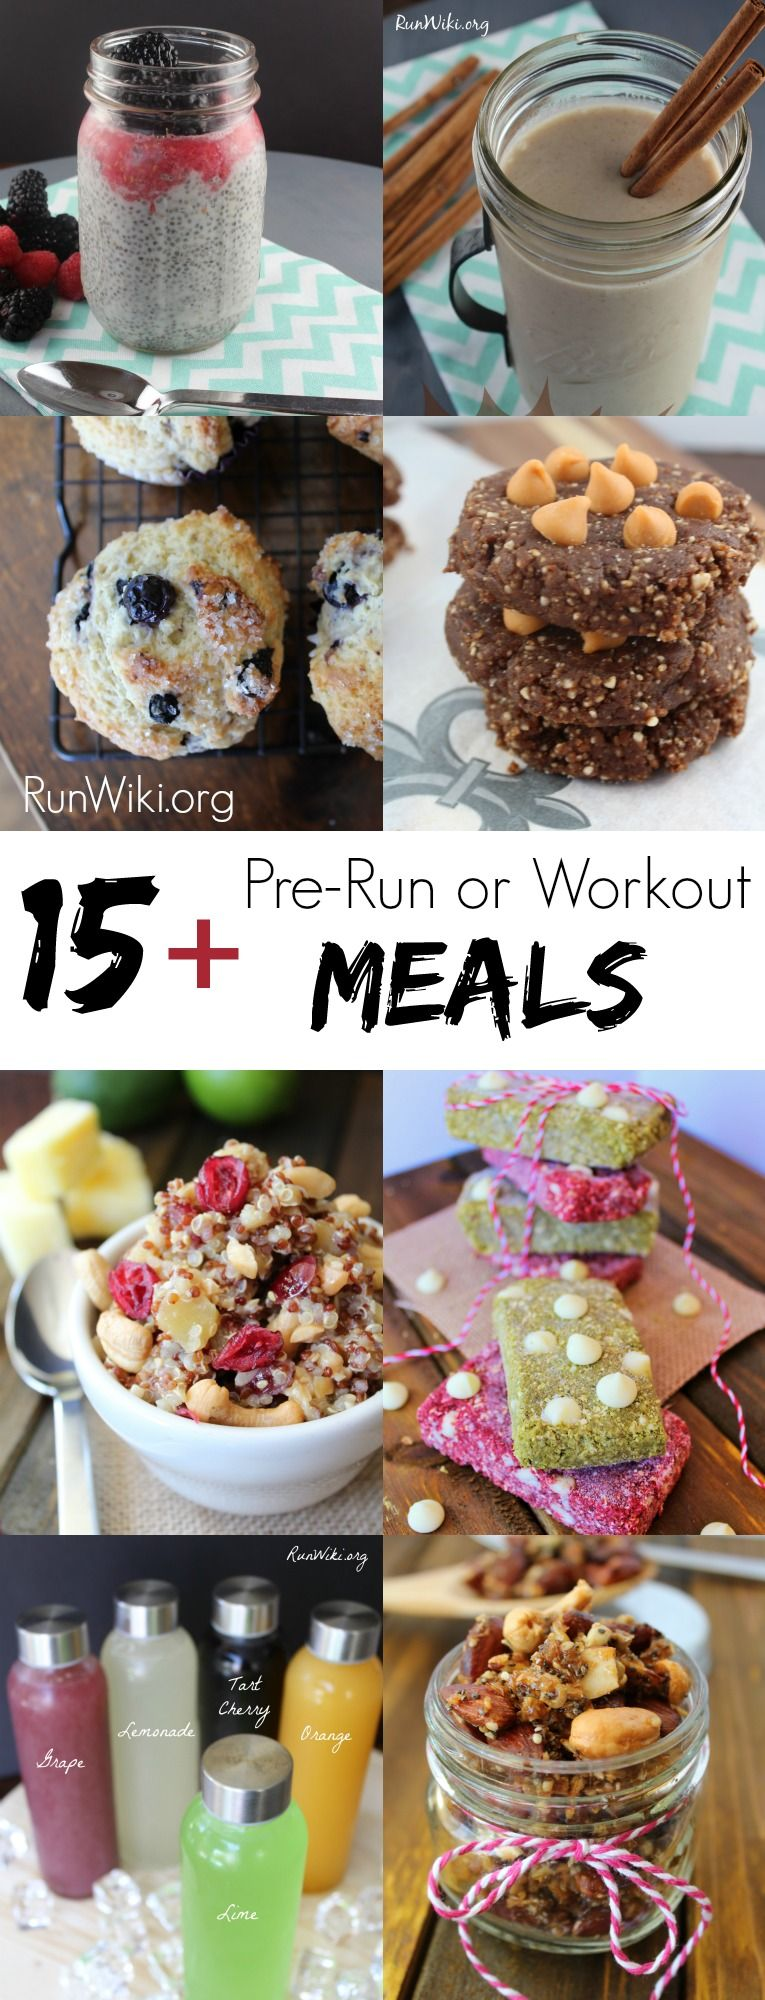 What should you eat before a long run or workout? Eat